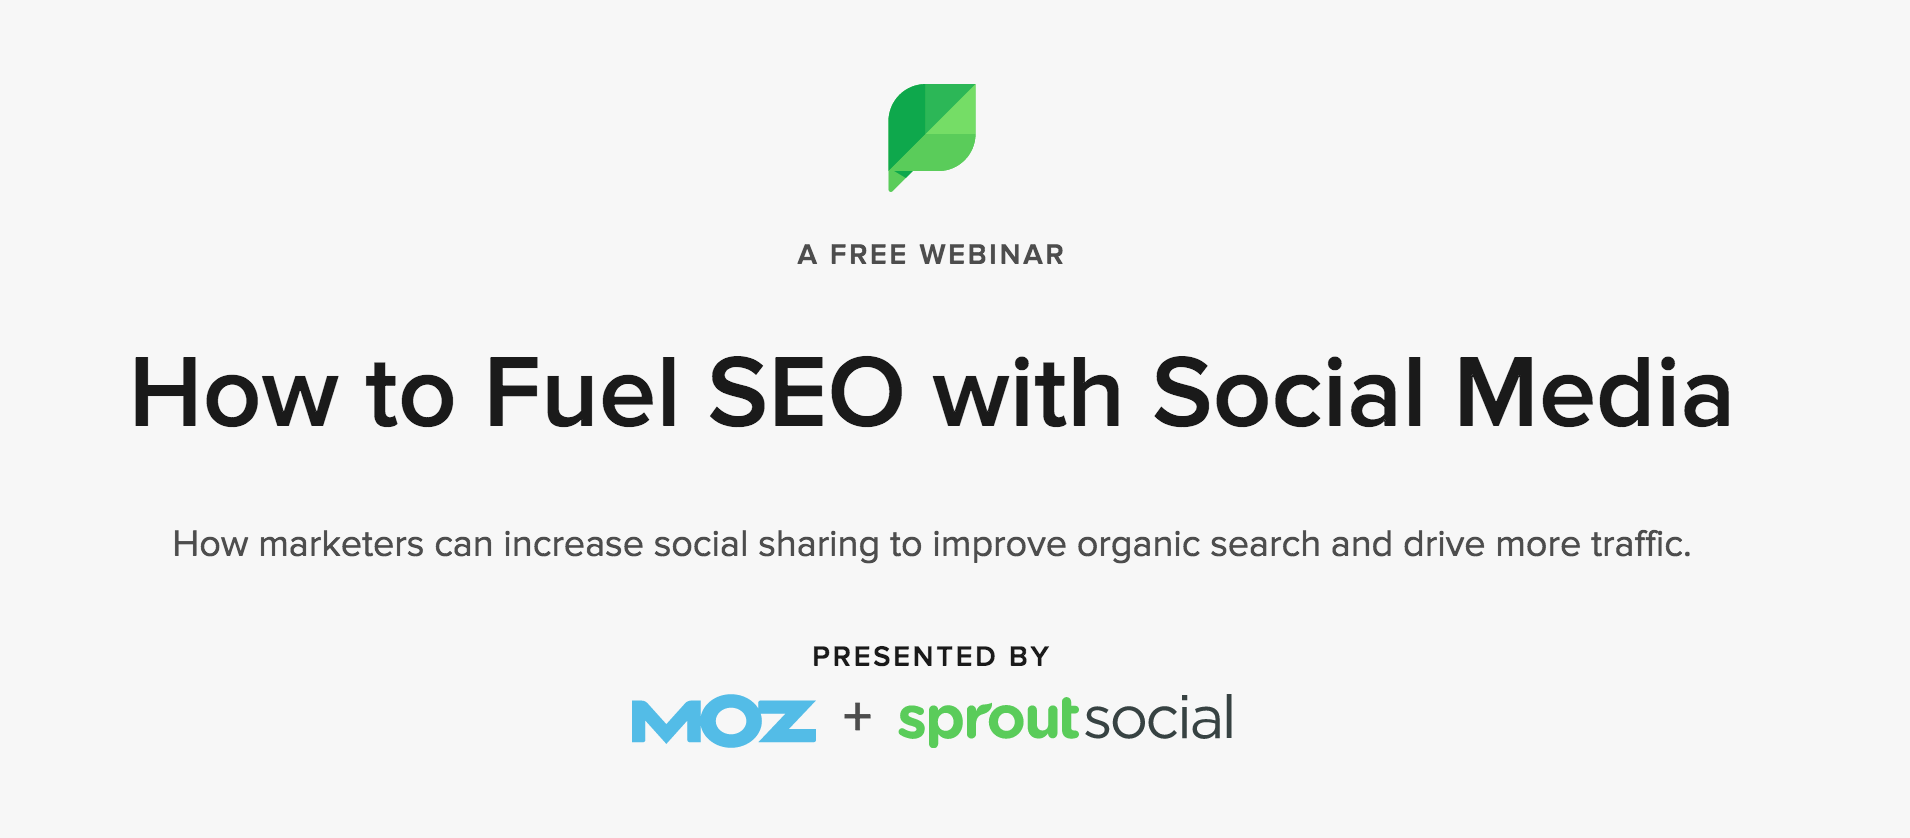 Moz and SproutSocial partnership